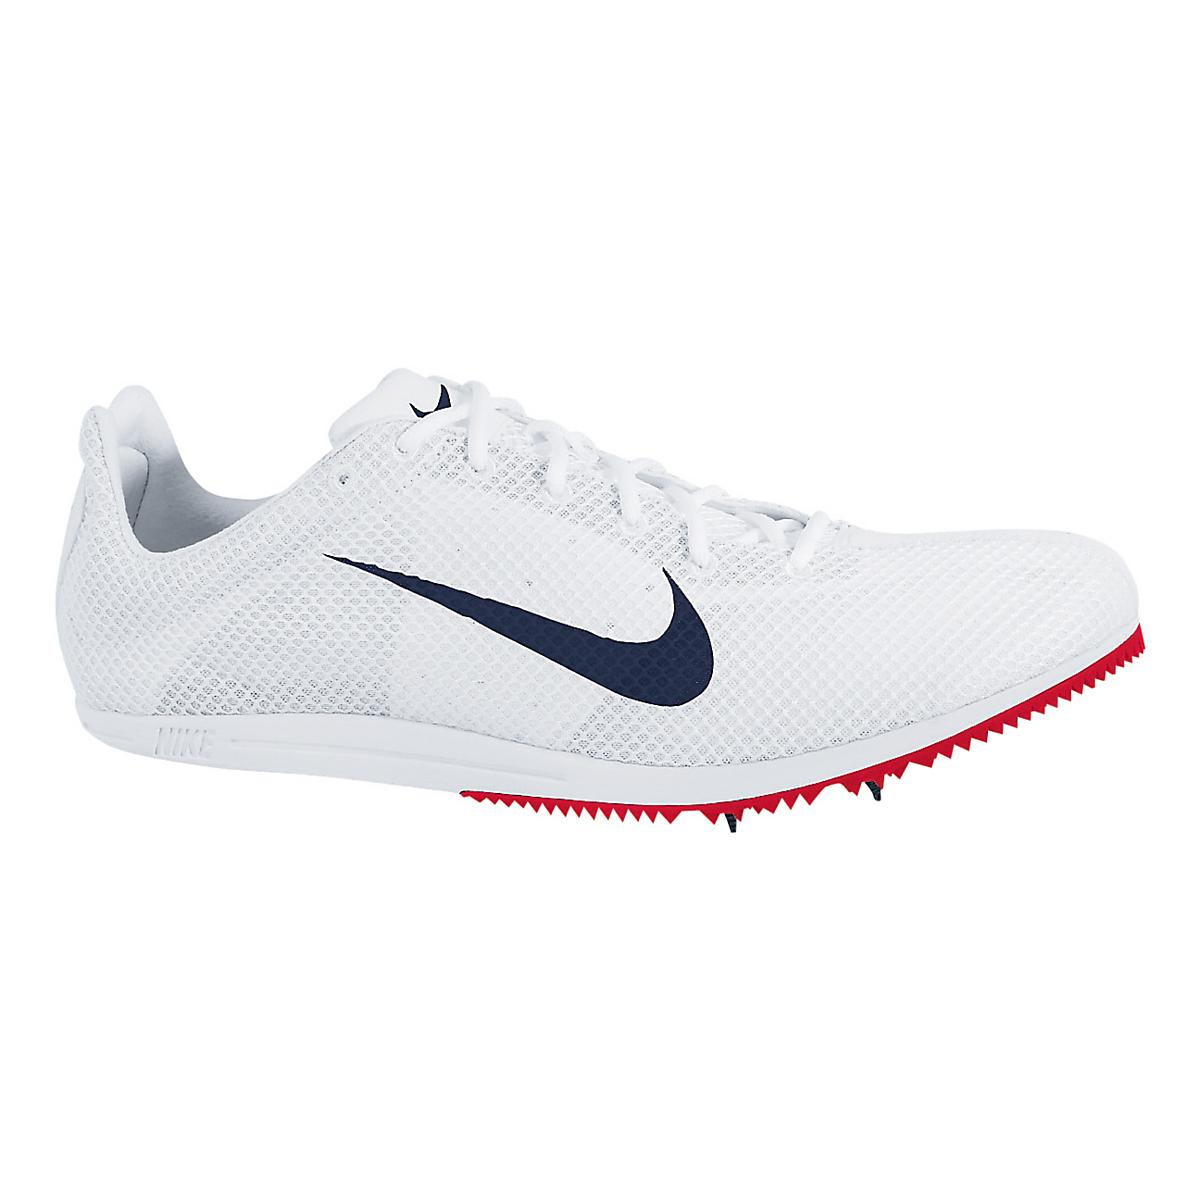 55b5e97f5799 Mens Nike Zoom Ventulus 2 Track and Field Shoe at Road Runner Sports